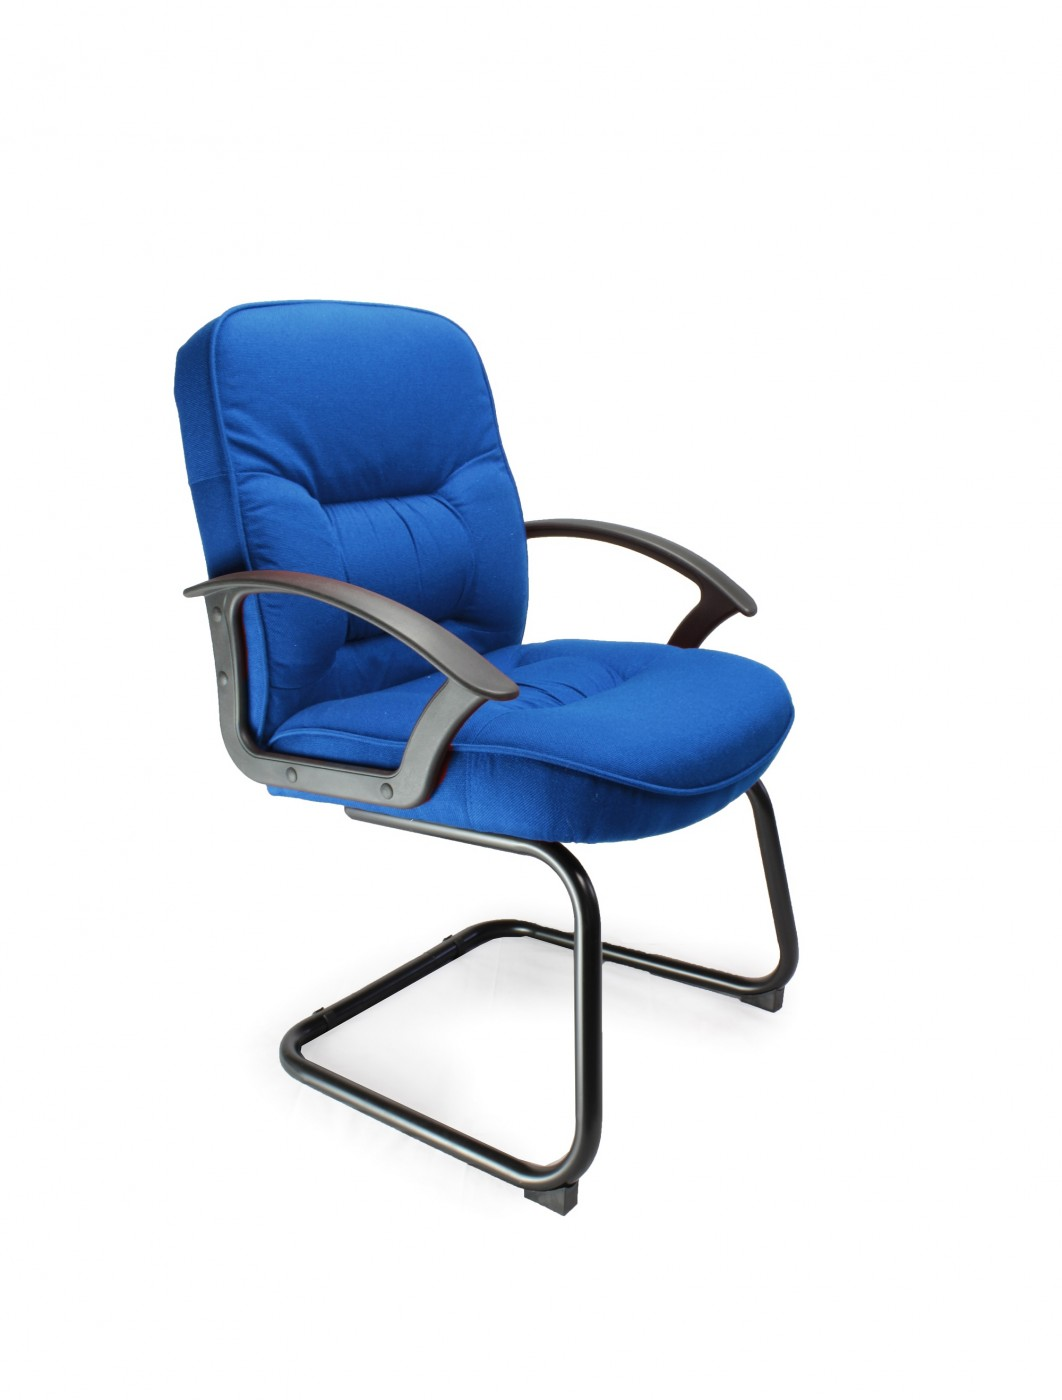 Avf Furniture ... Fabric Cantilever Visitors Chair 6062AV/F | 121 Office Furniture